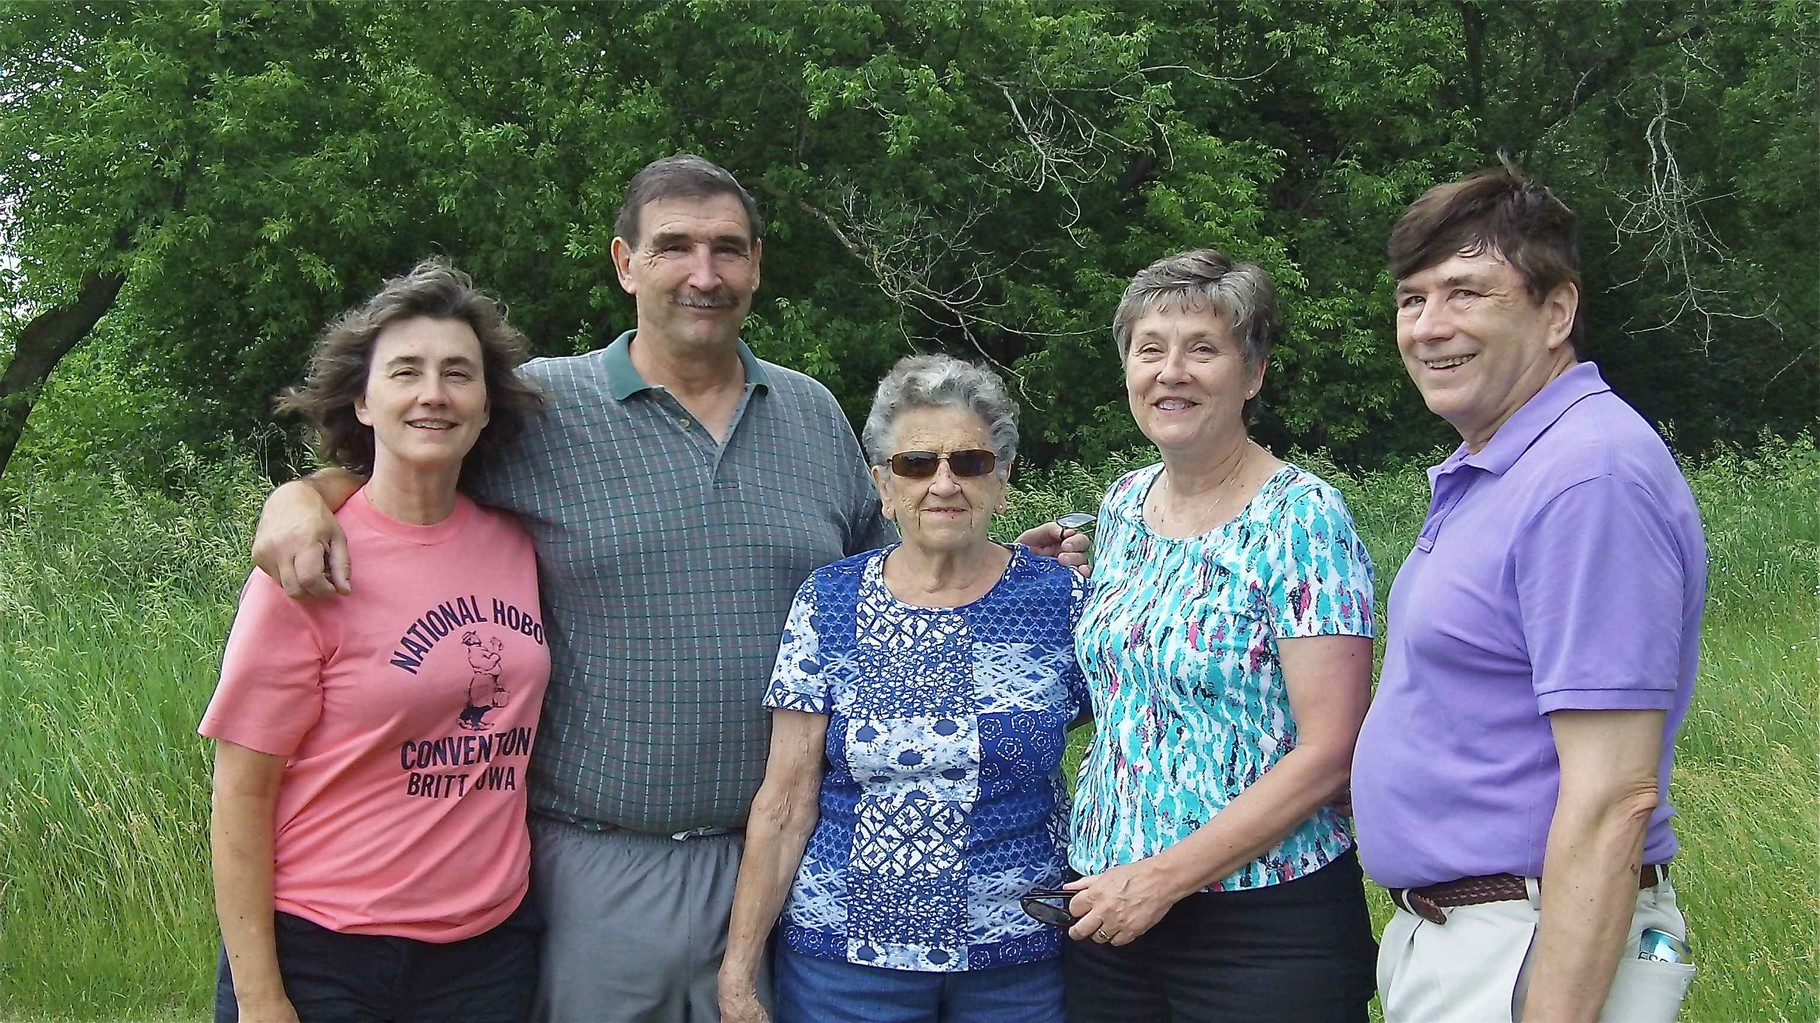 Ann, Paul, Mary Lou, Cindy, & John Wagner July, 2014, by the Mississippi River